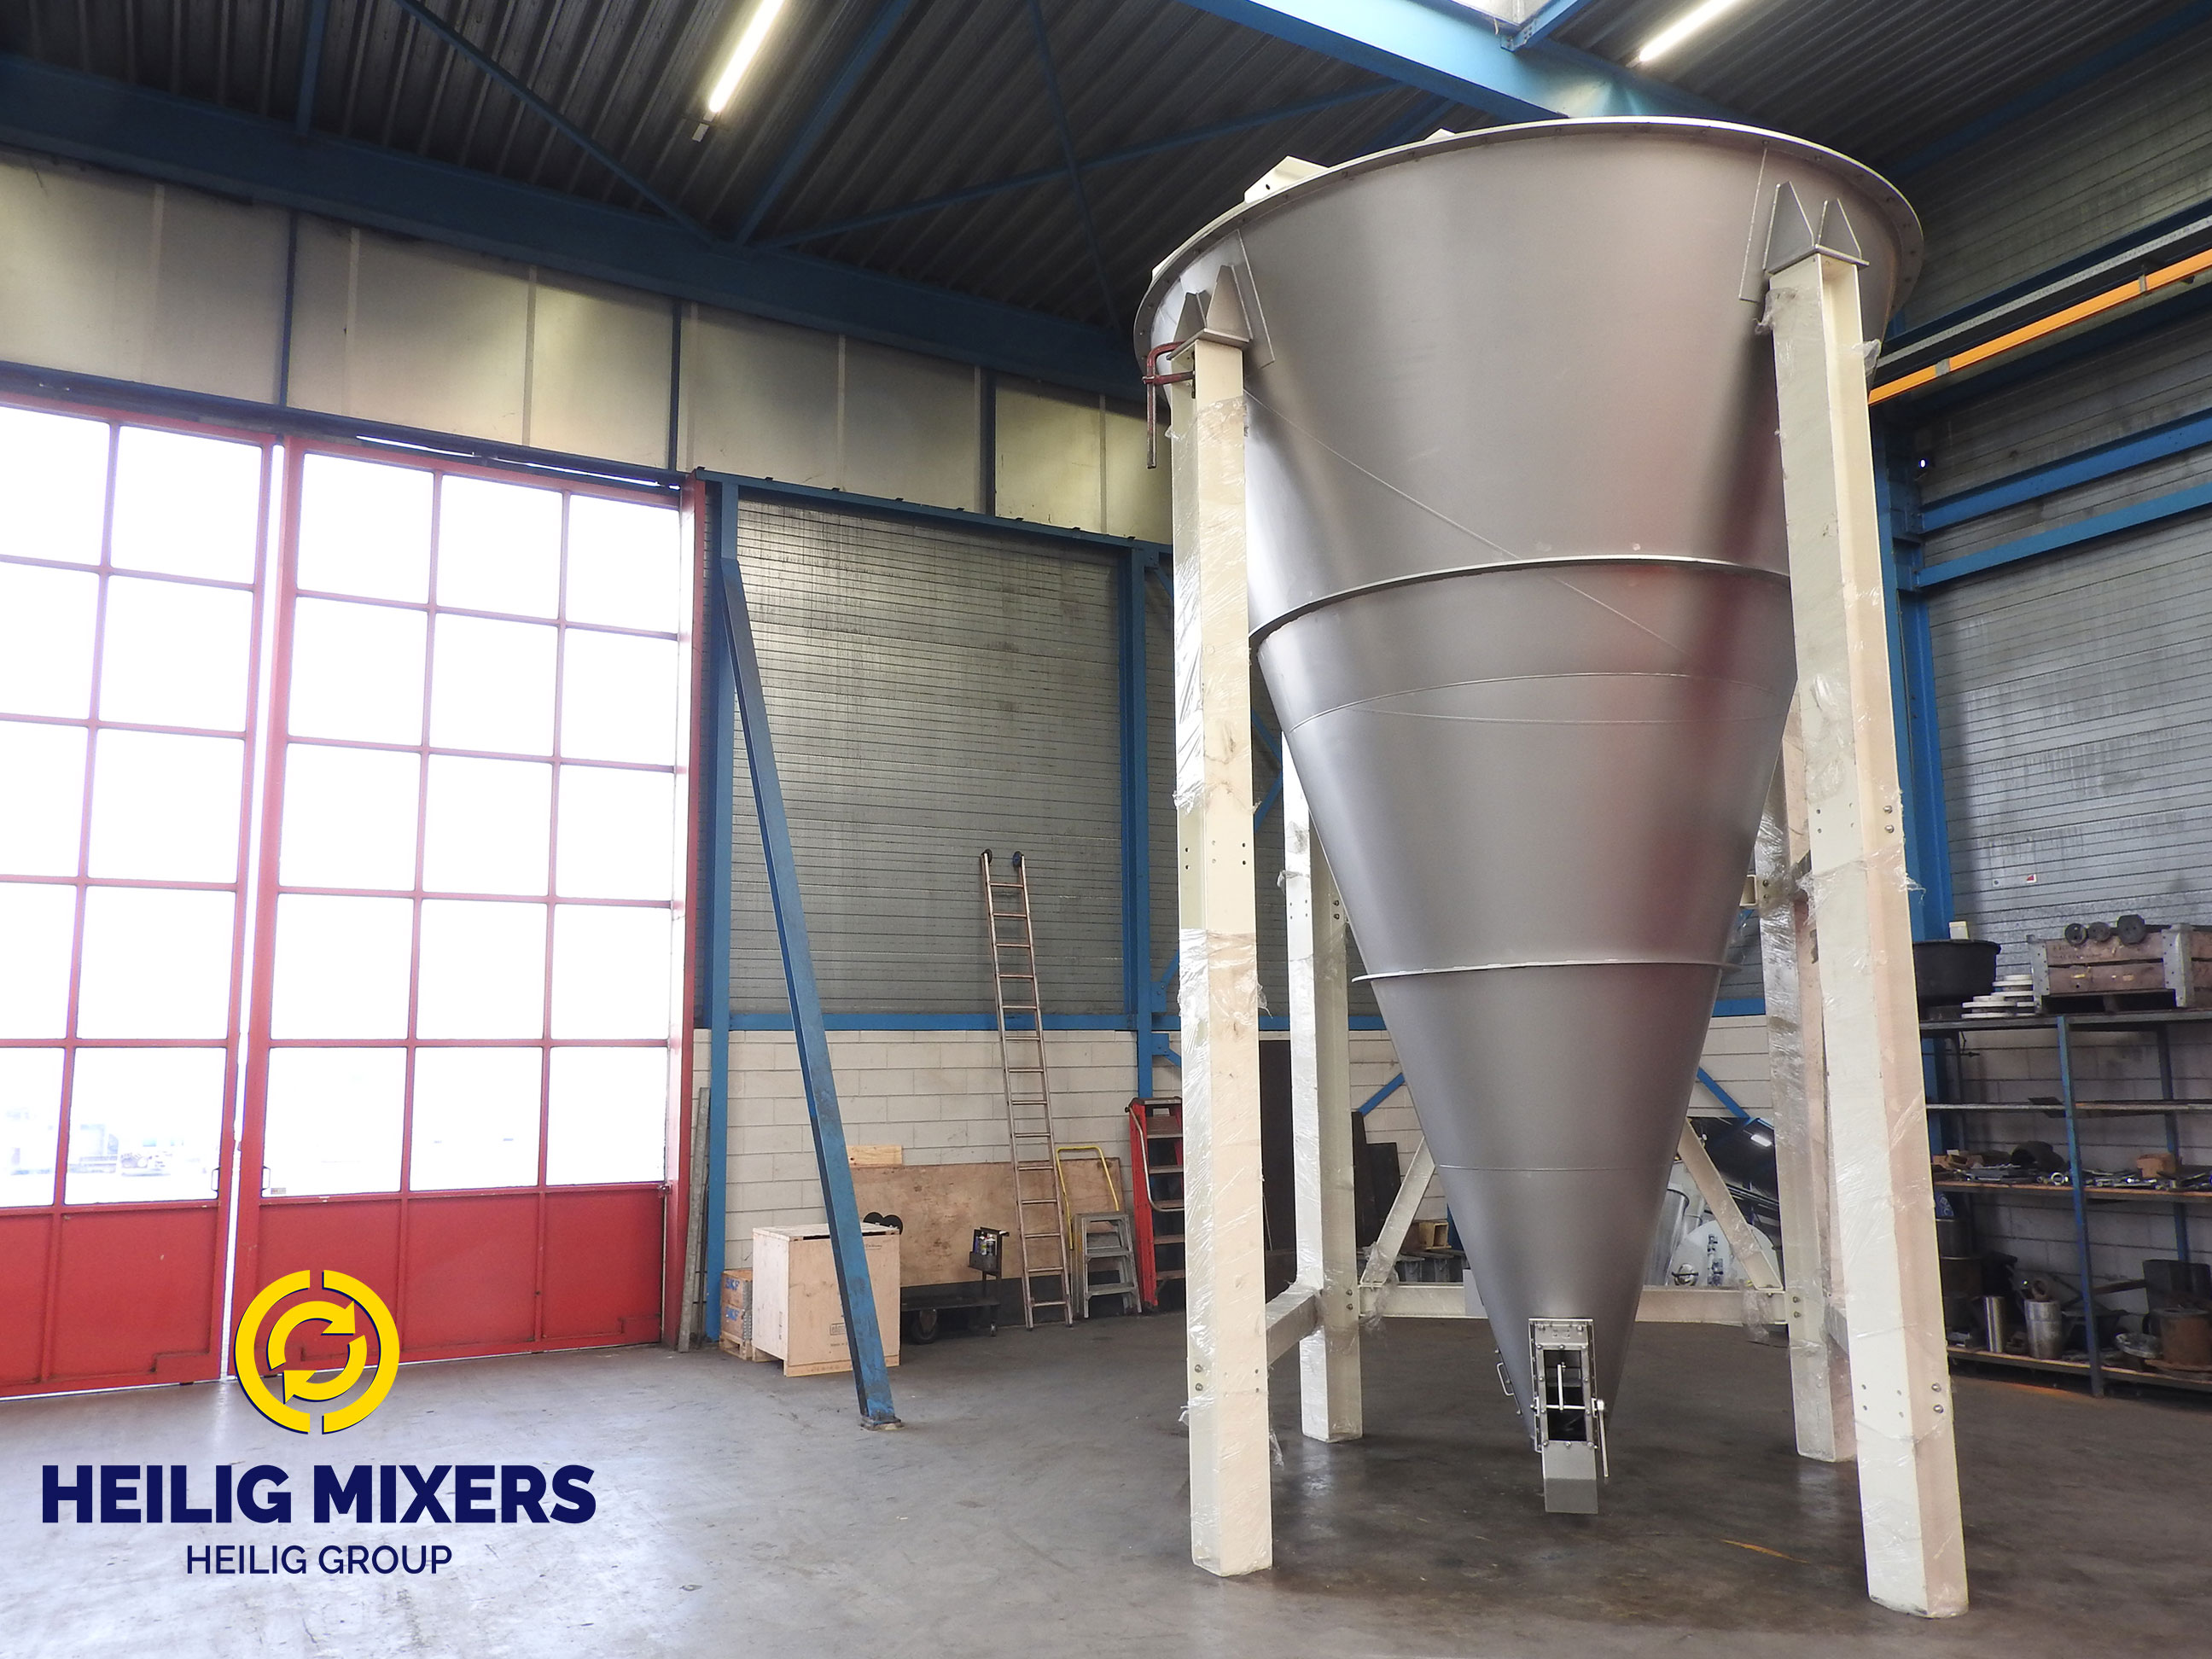 New conical mixer delivery for Heilig Mixing Technology